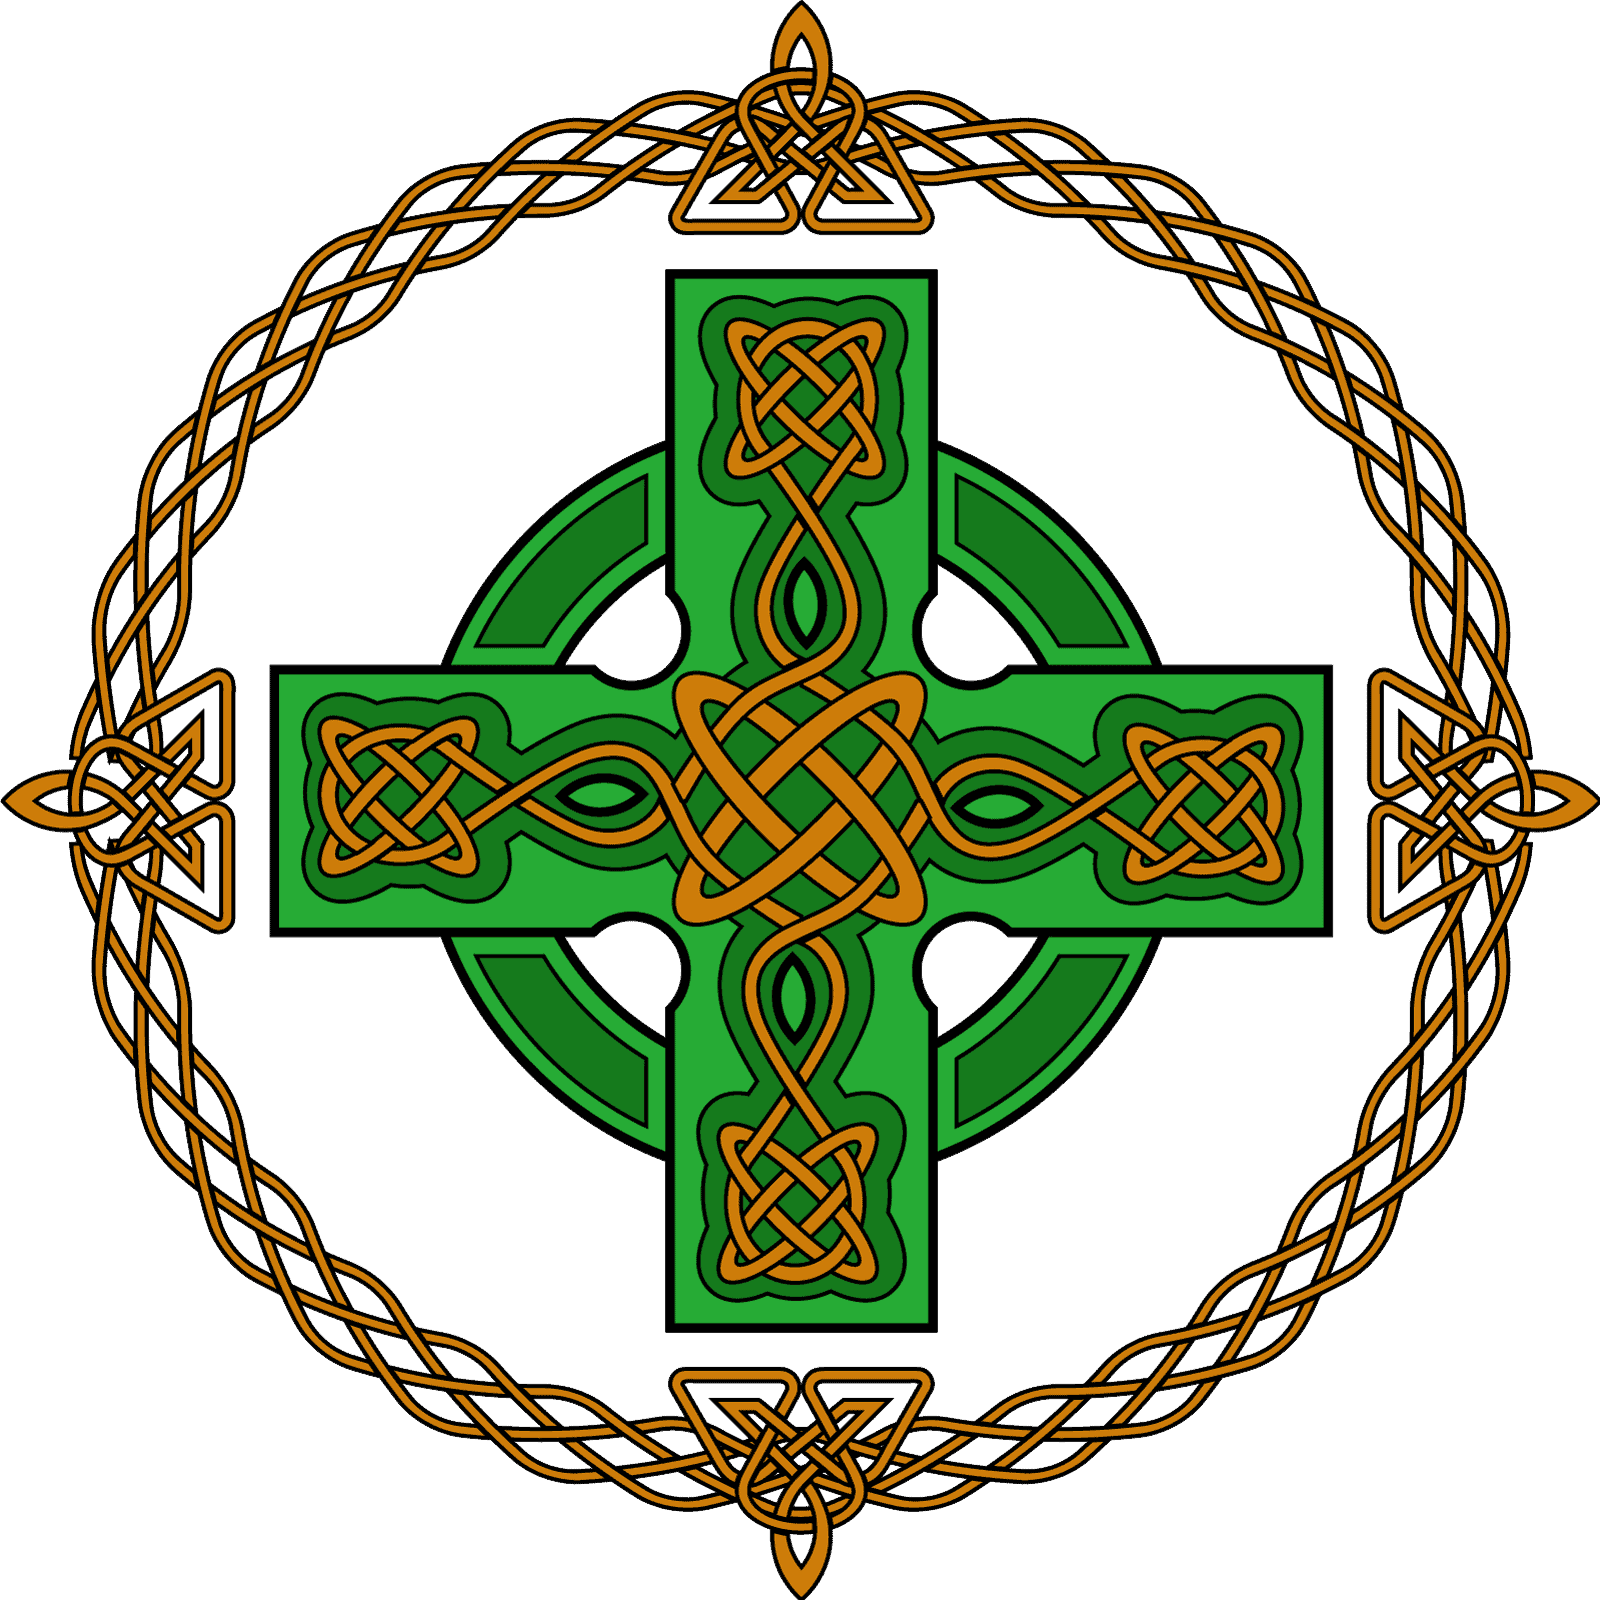 Celtic Cross Symbol made with Celtic knots, Celtic Symbols and Their Meanings Explained